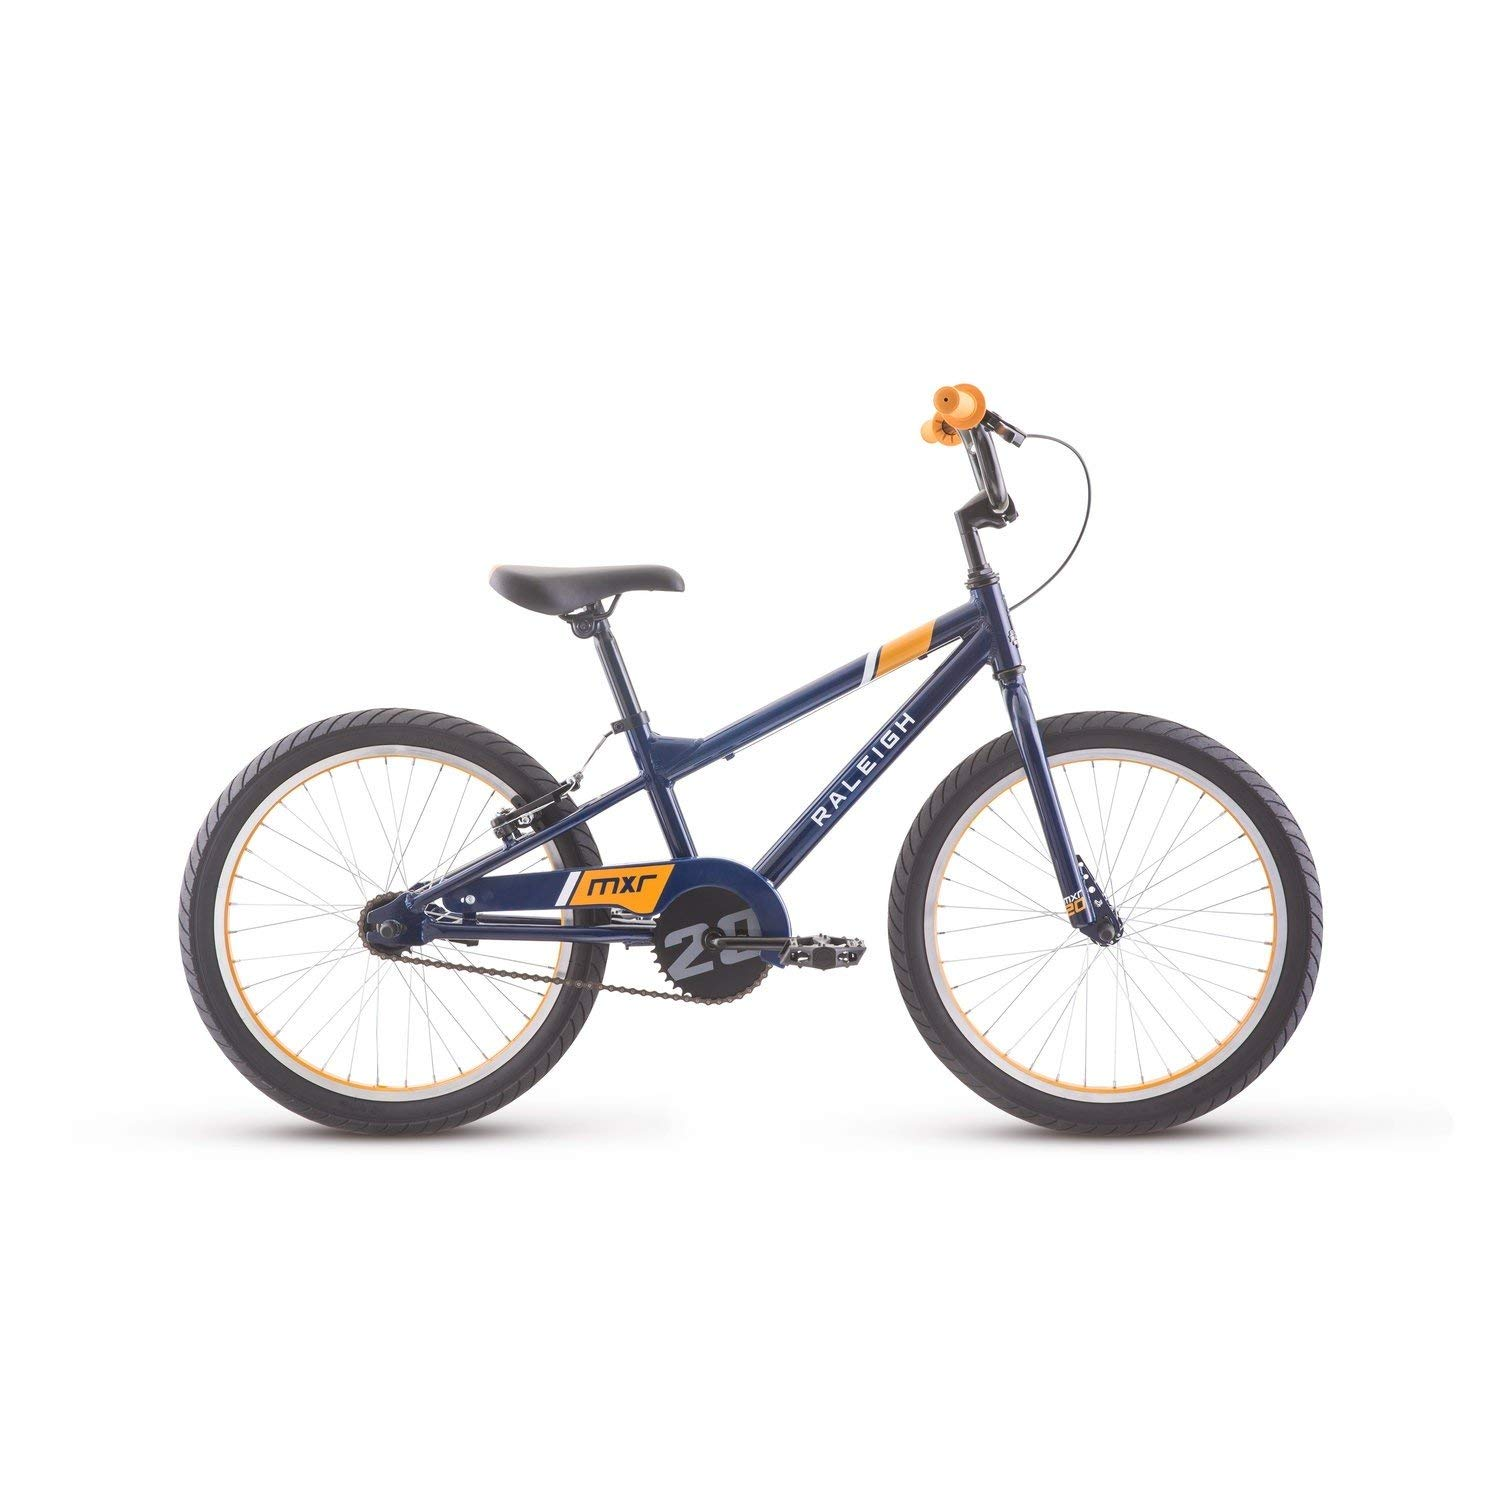 Bmx Bikes For Kids >> Raleigh Bikes Mxr 20 Kids Bmx Bike For Boys Youth 4 8 Years Old Blue